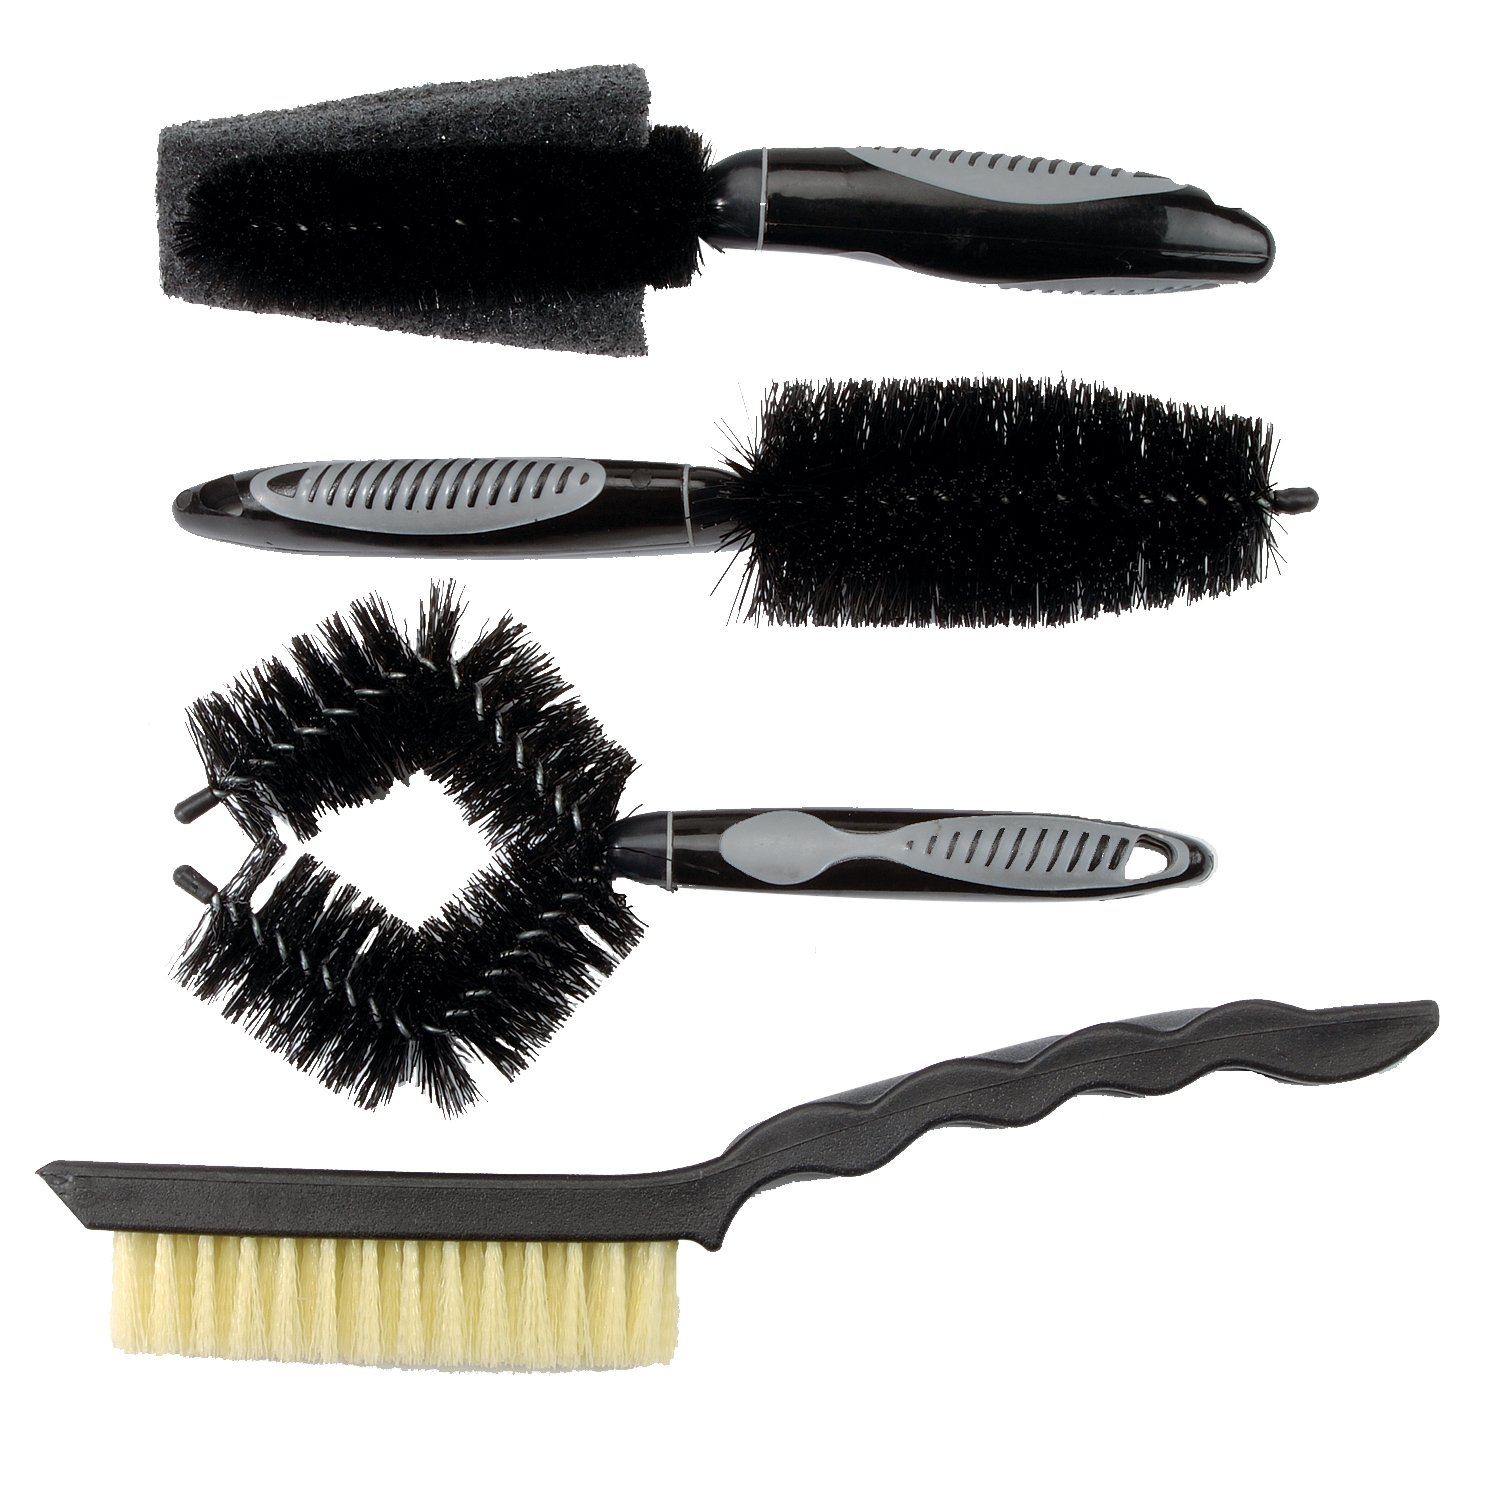 Nashbar Cleaning Brush Set